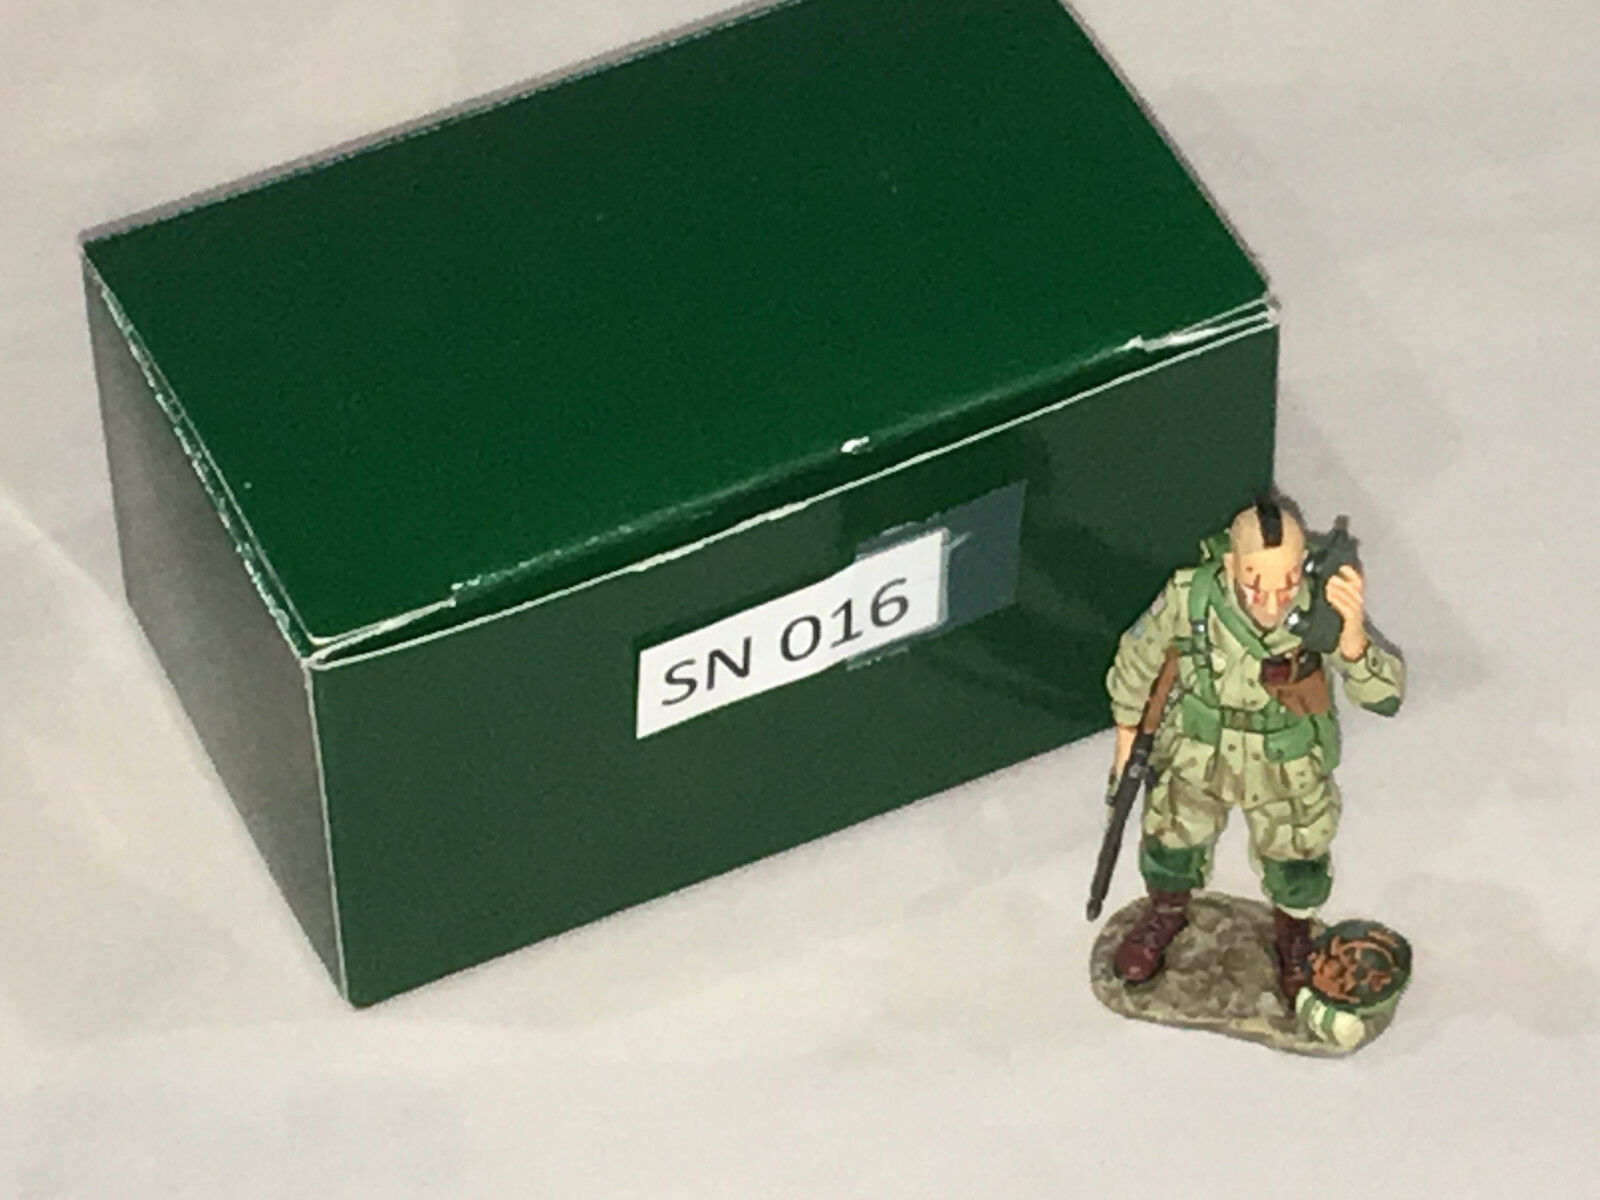 King & Country DD46 D-Day 44 mohawk soldier w  canteen w  box (SN 016)